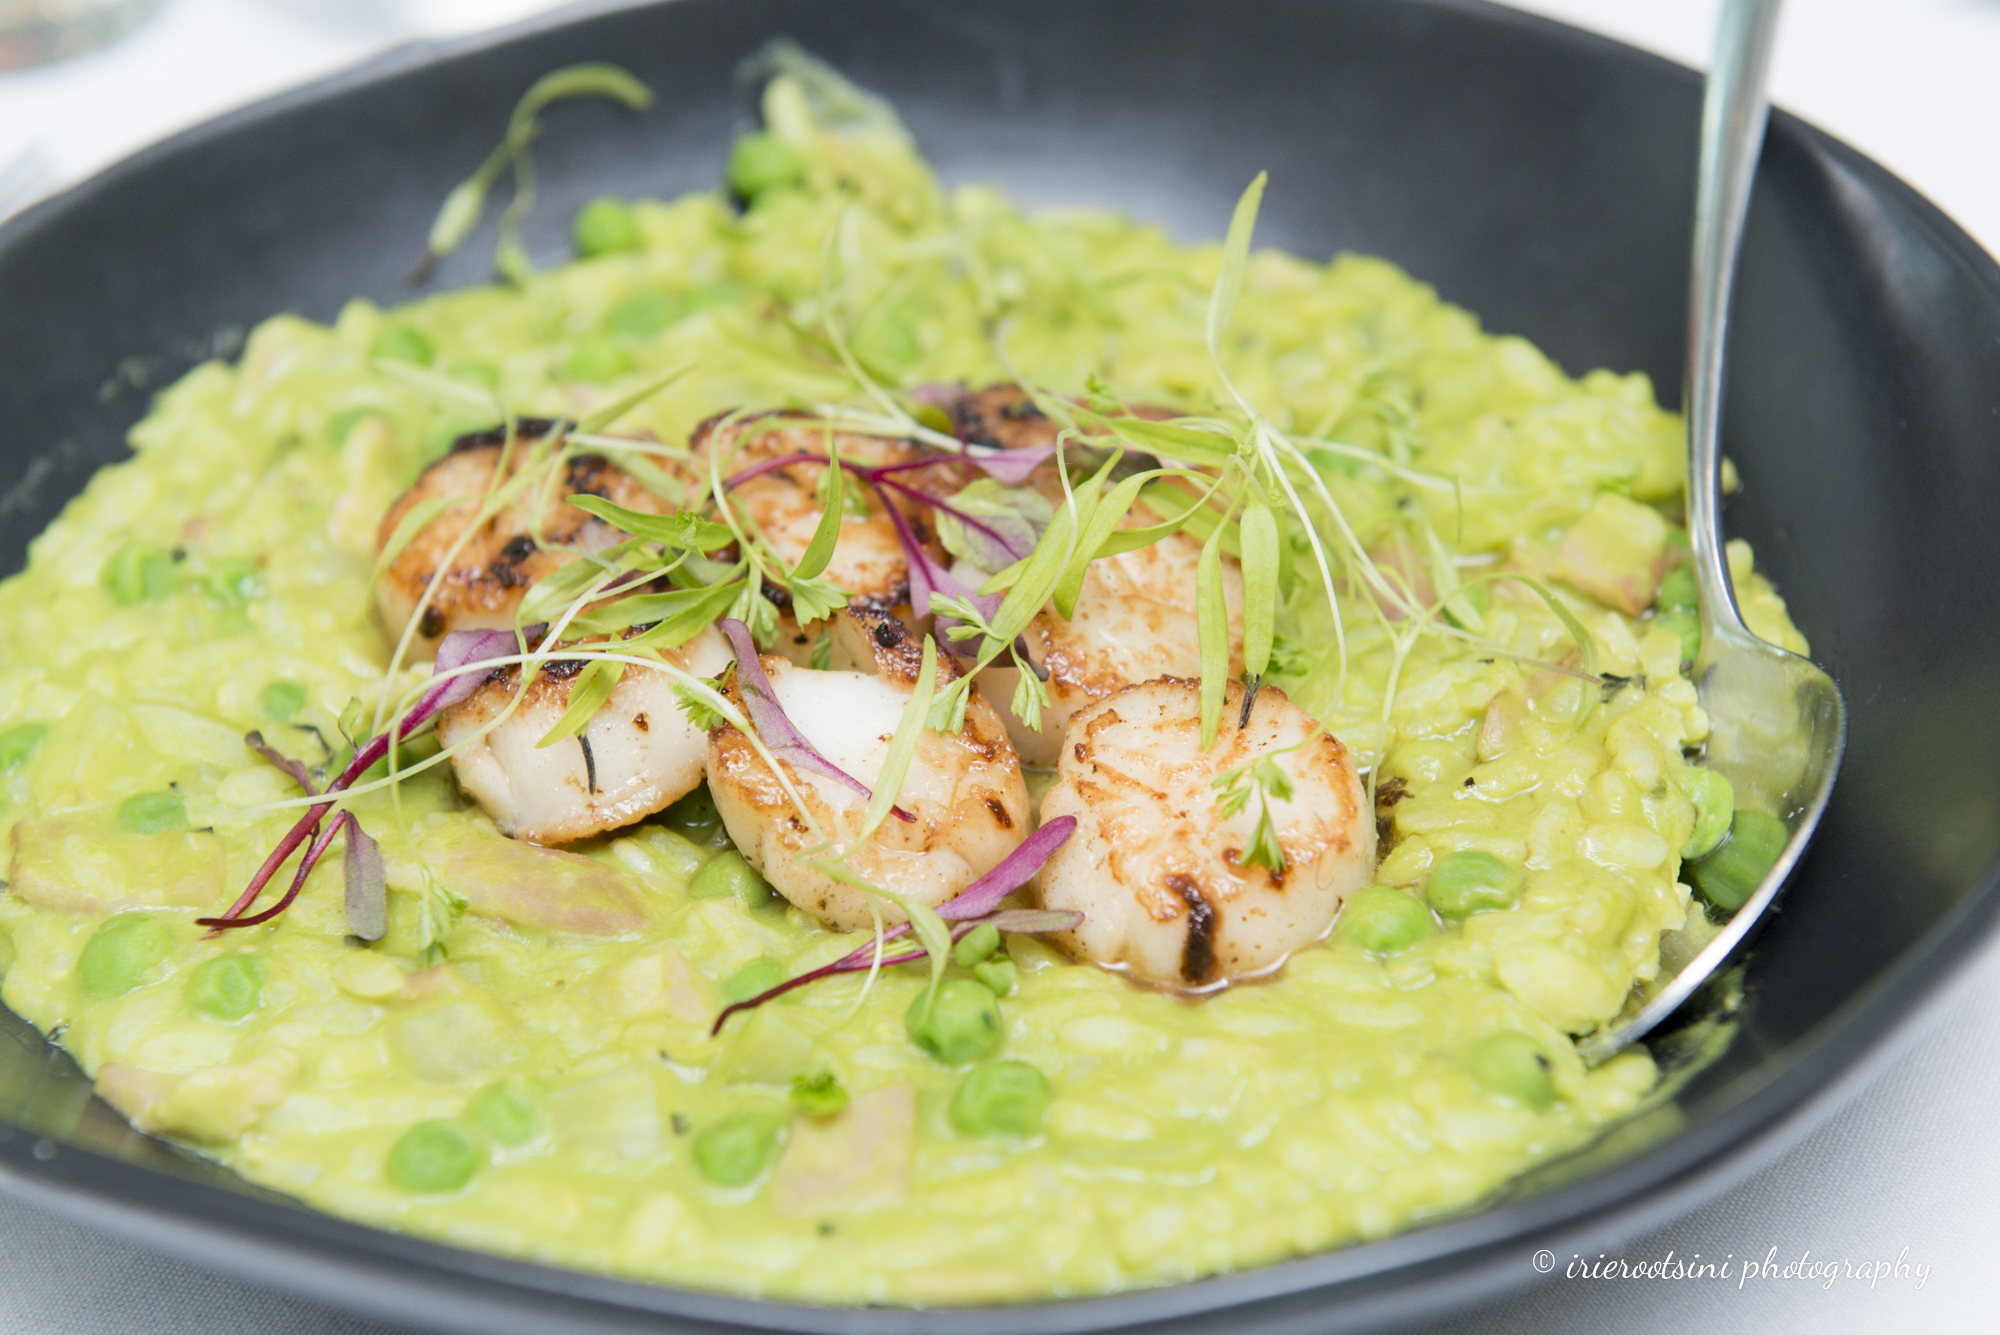 Scallop with Green Peas